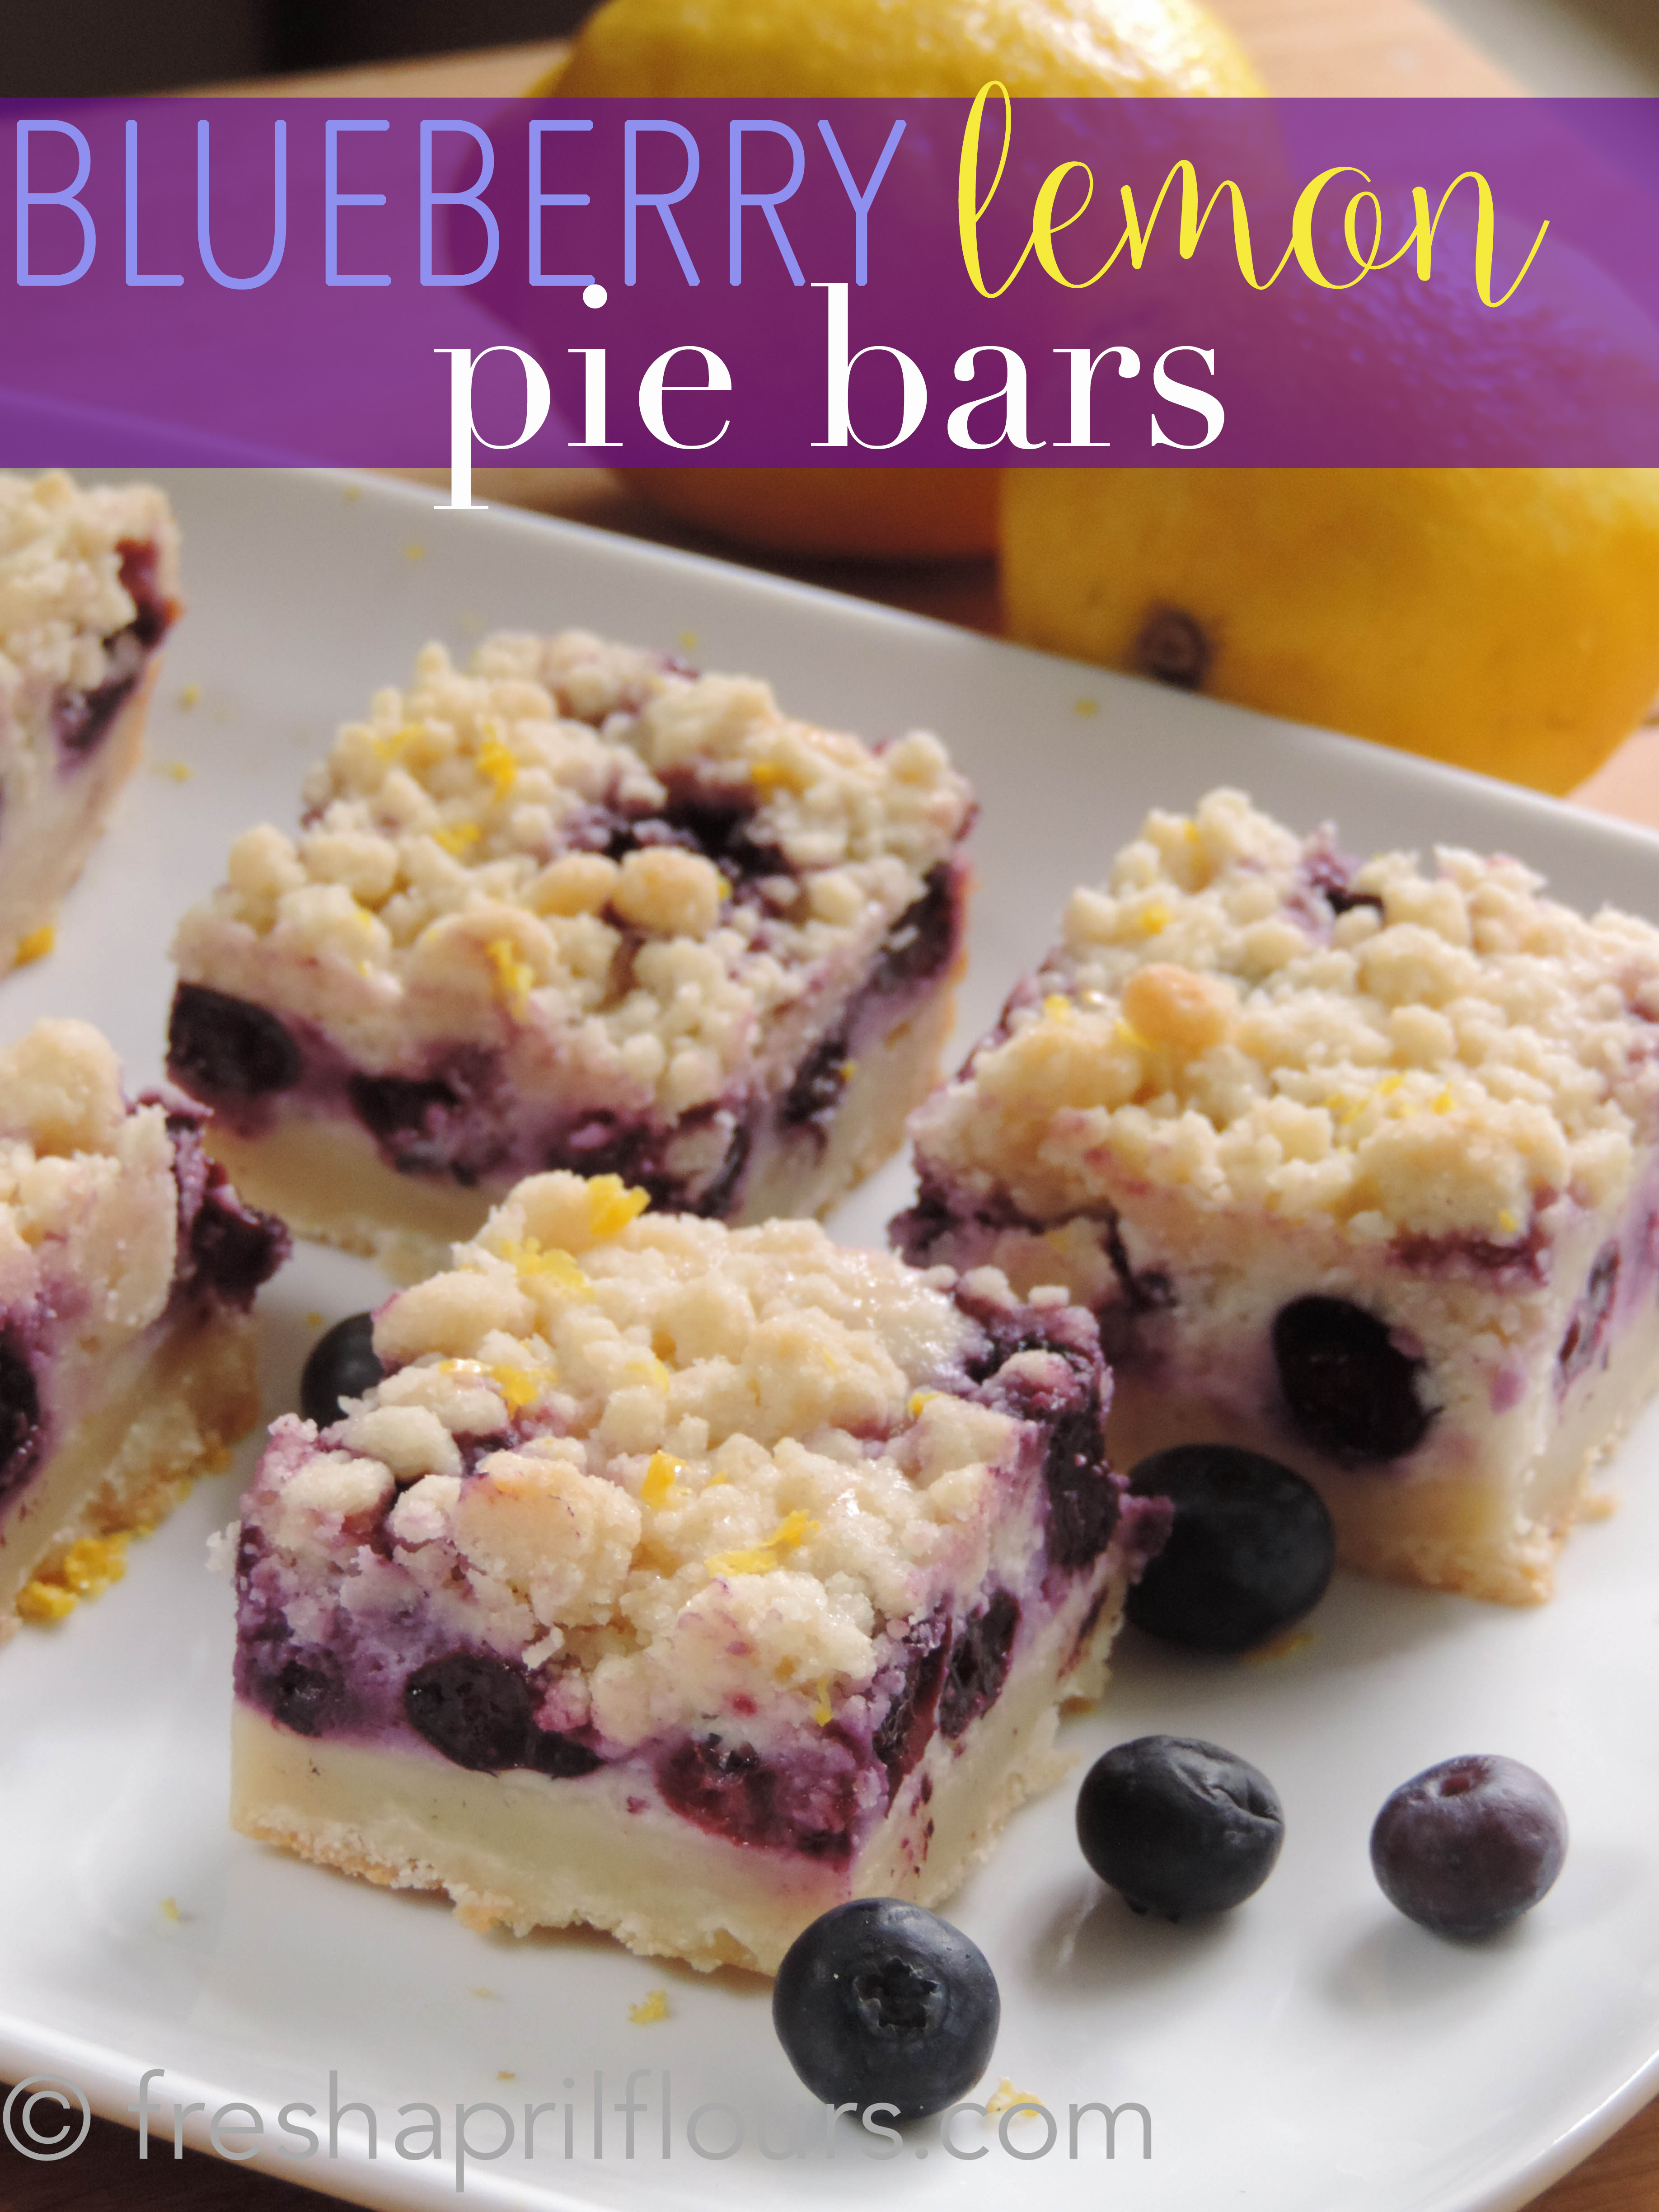 Creamy and sweet pie bursting with blueberries and citrusy lemon on top of shortbread crust. In portable bar form!